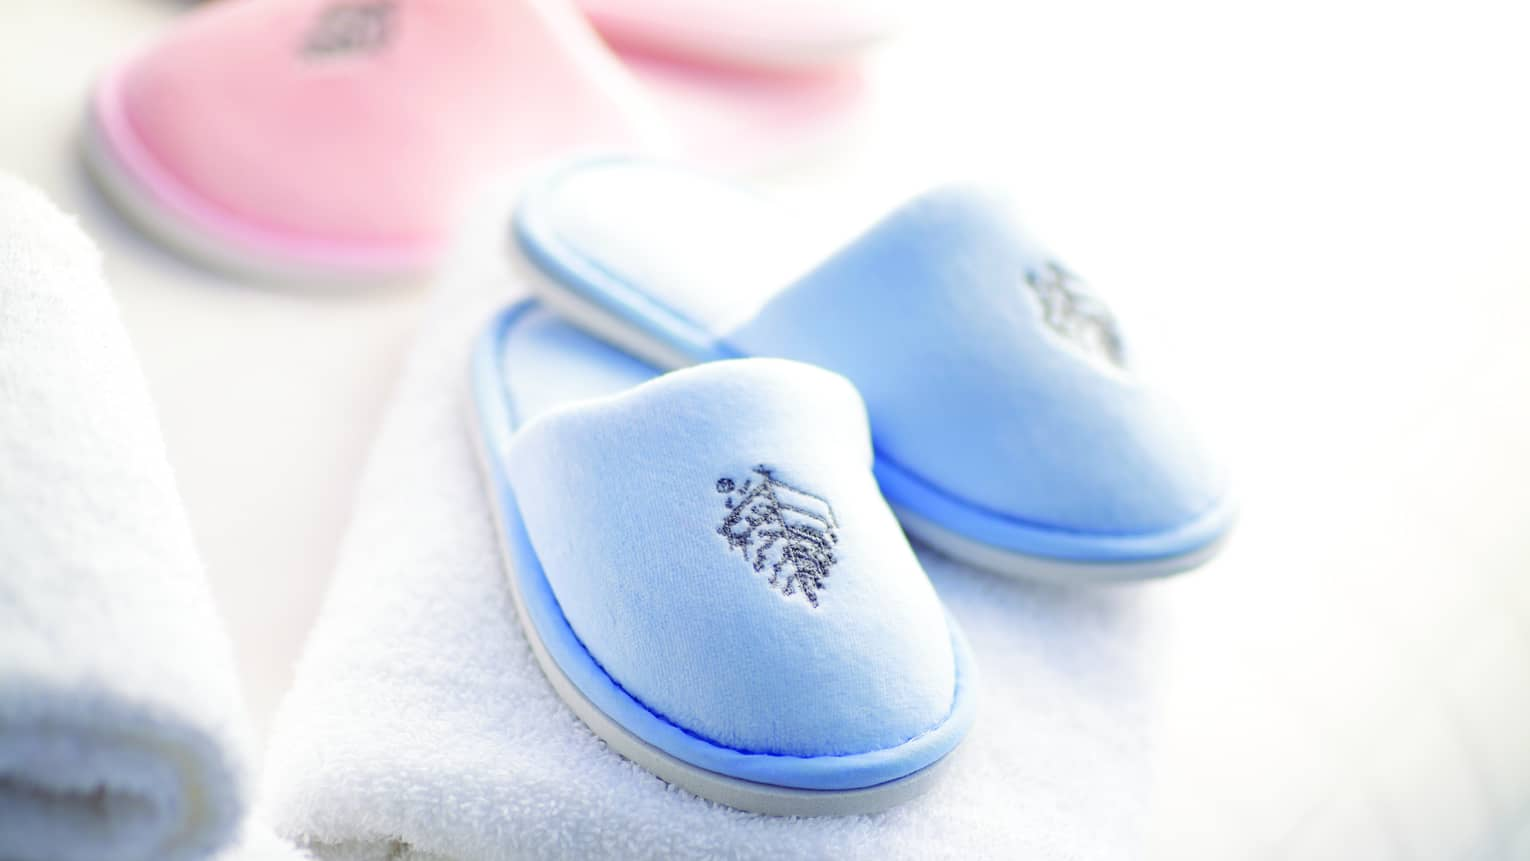 A pair of baby pink and baby blue kid's spa slippers and fluffy white towels